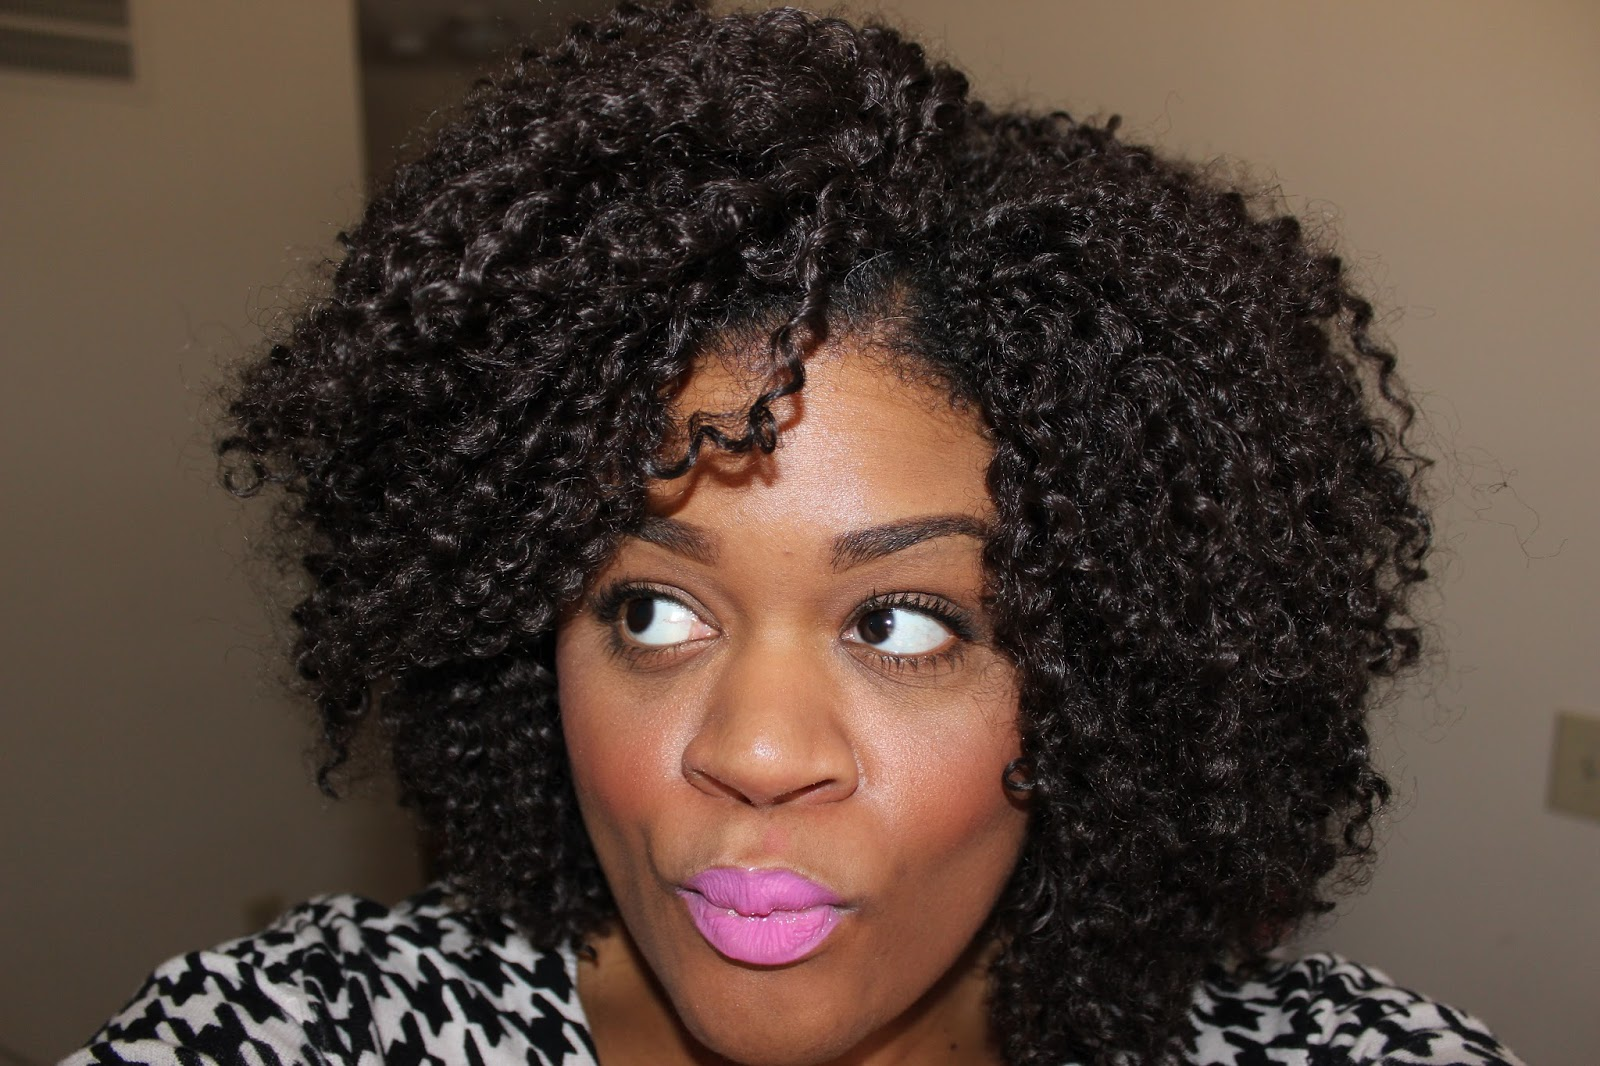 Crochet Hair Damage : Can Crochet Braids Damage Hair Black Hairstyle and Haircuts